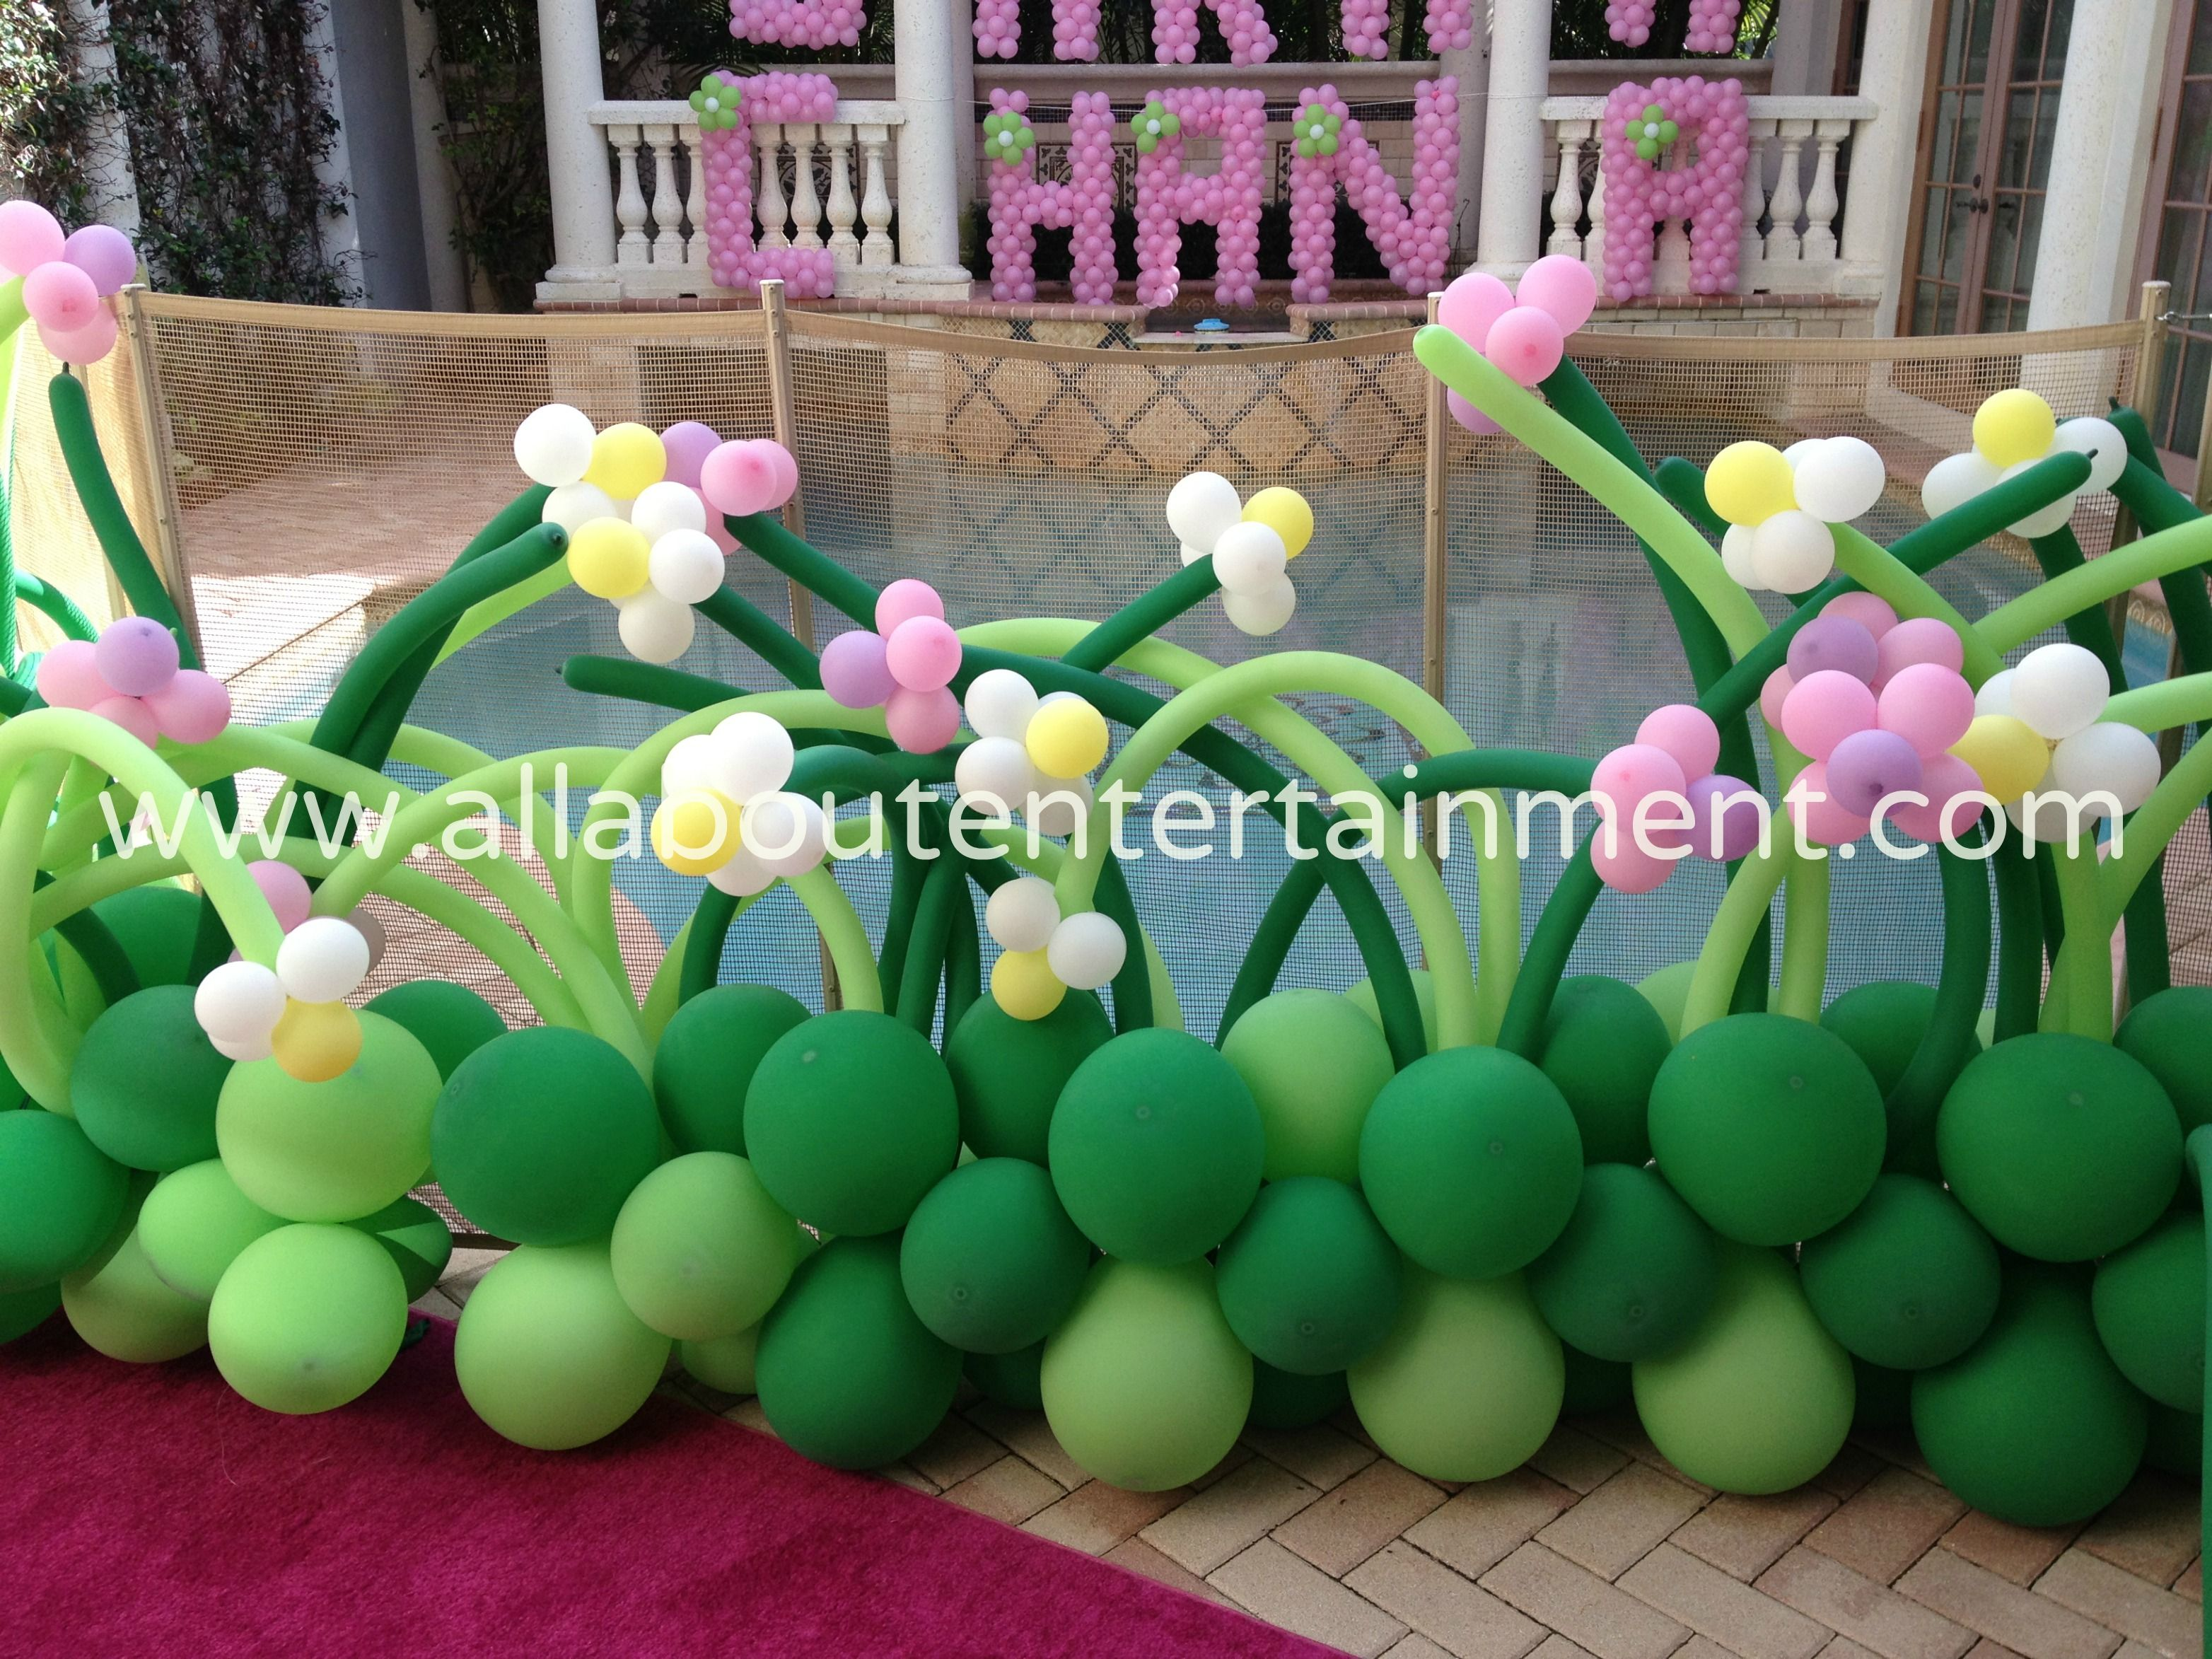 Flower Decor / Balloon Decoration / Party Ideas / May Flowers ...